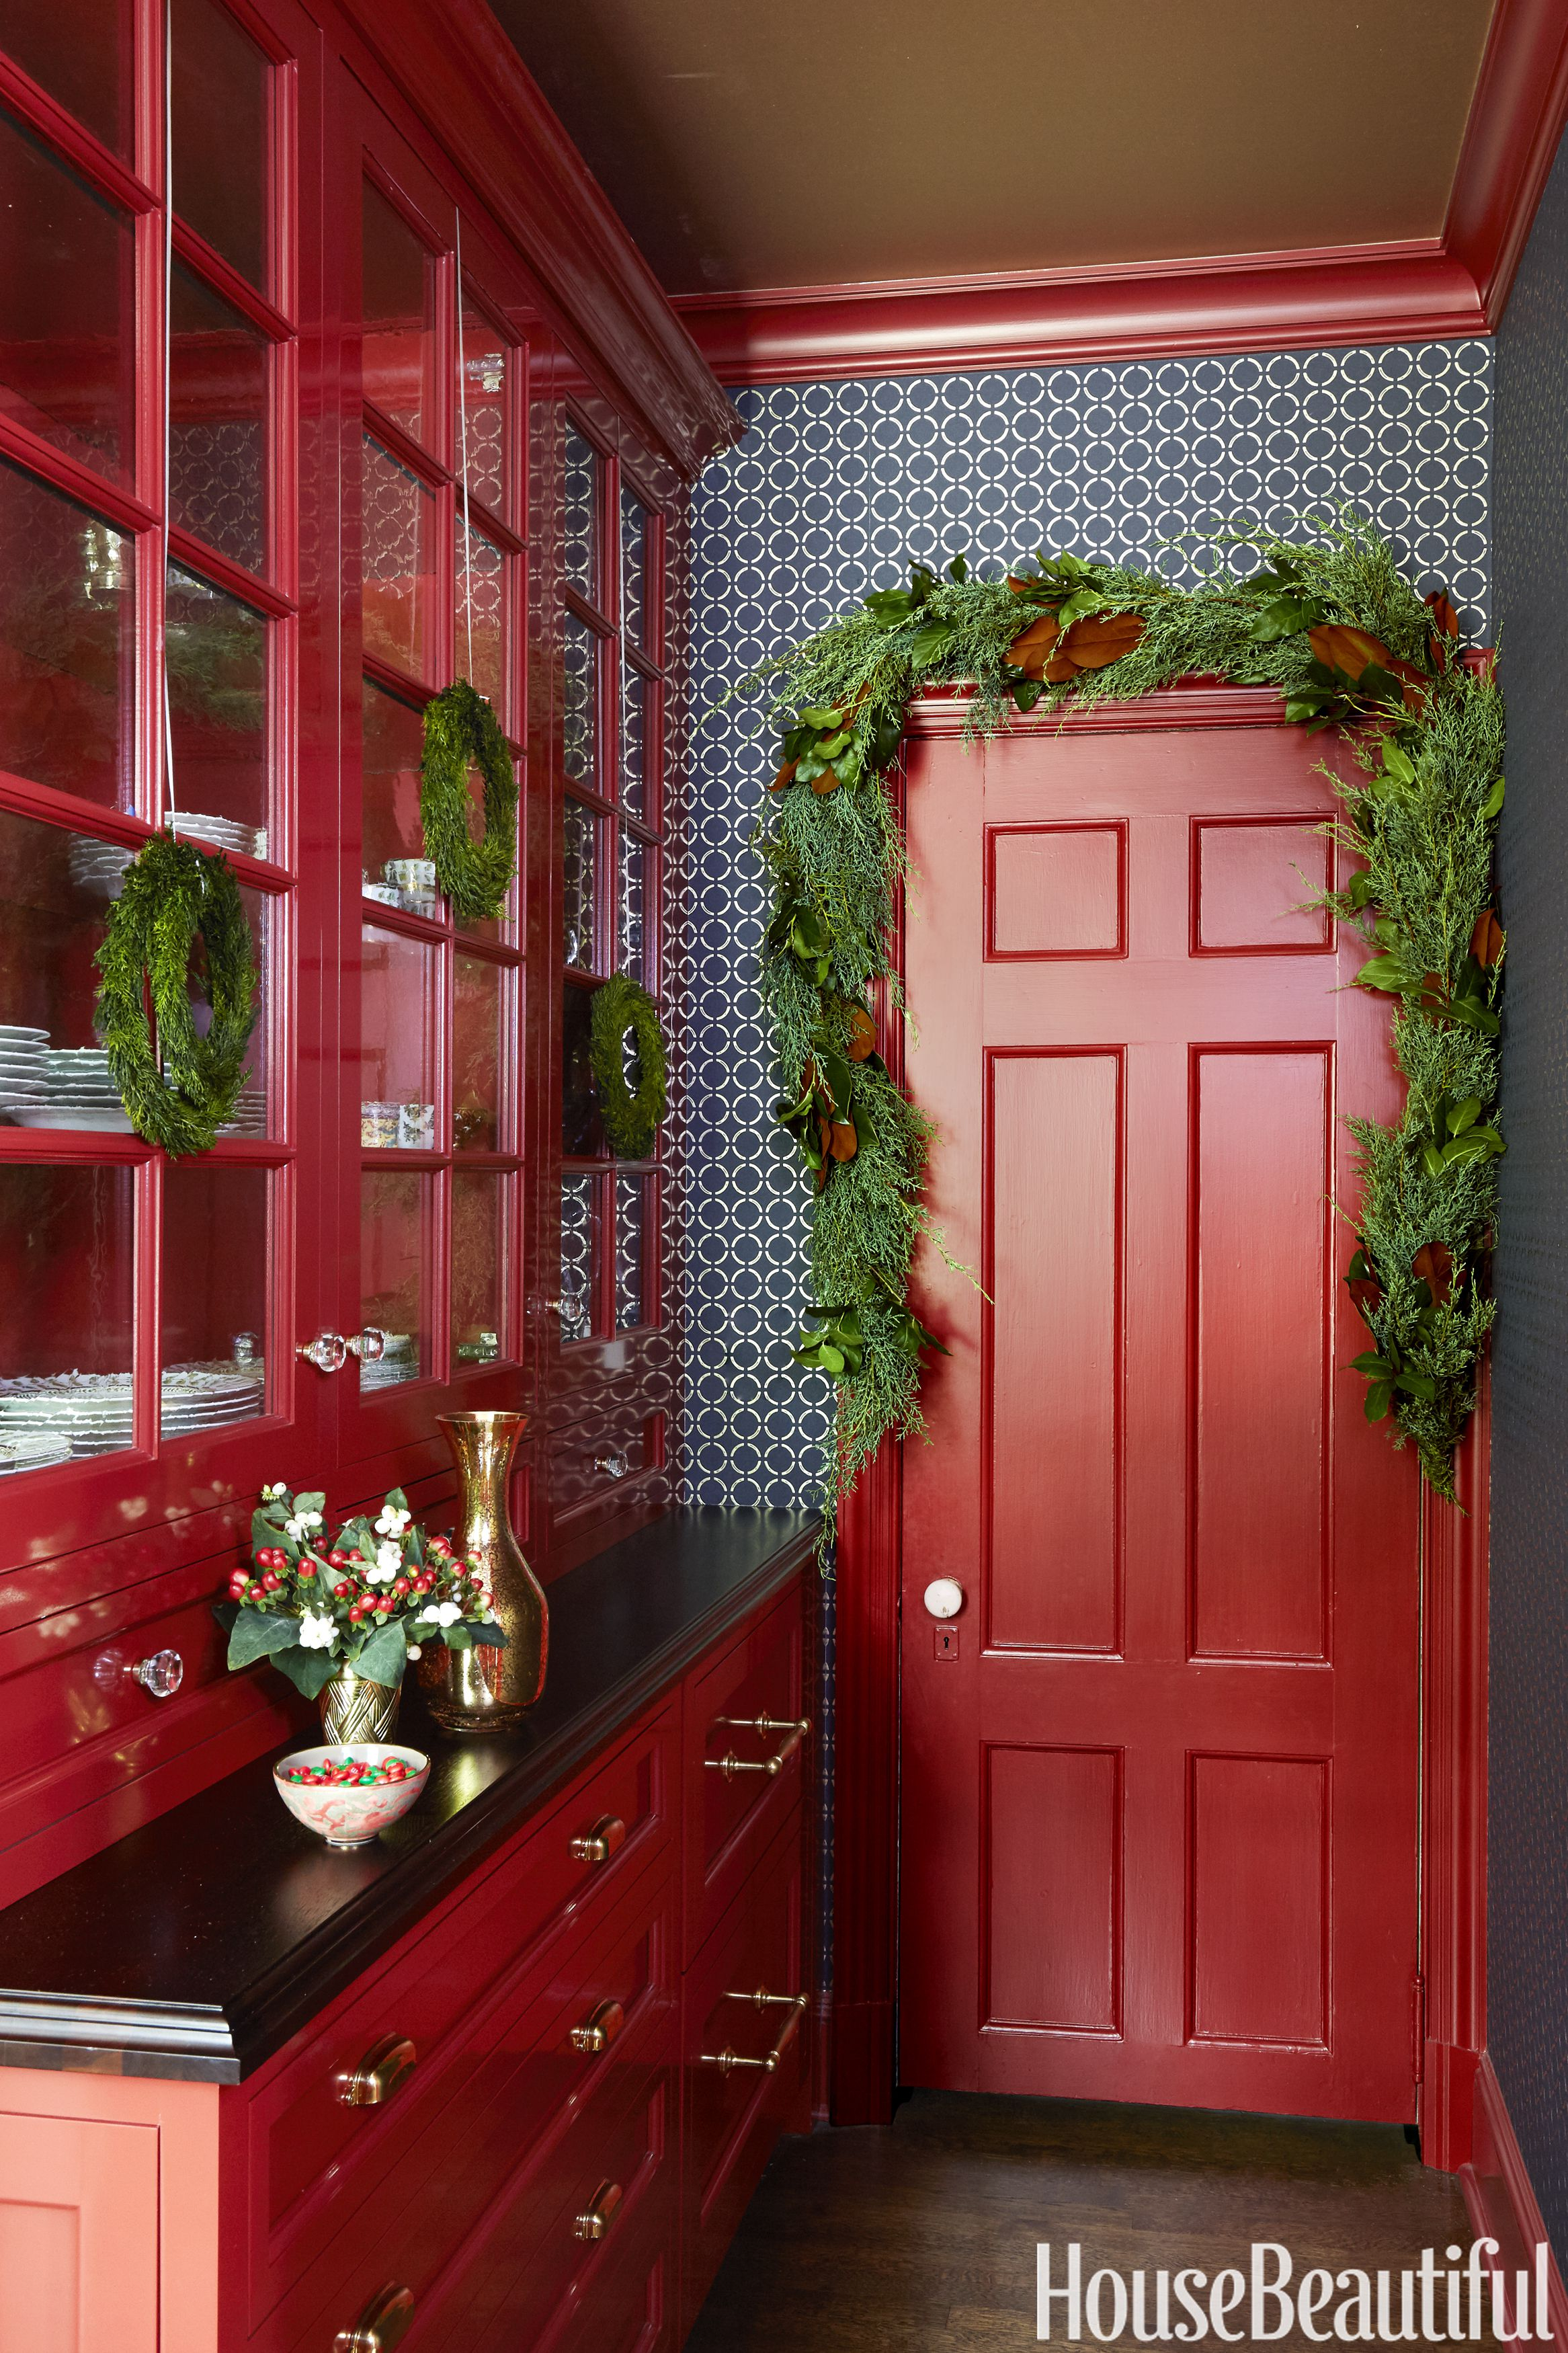 14 Red Kitchen Decor Ideas - Decorating a Red Kitchen